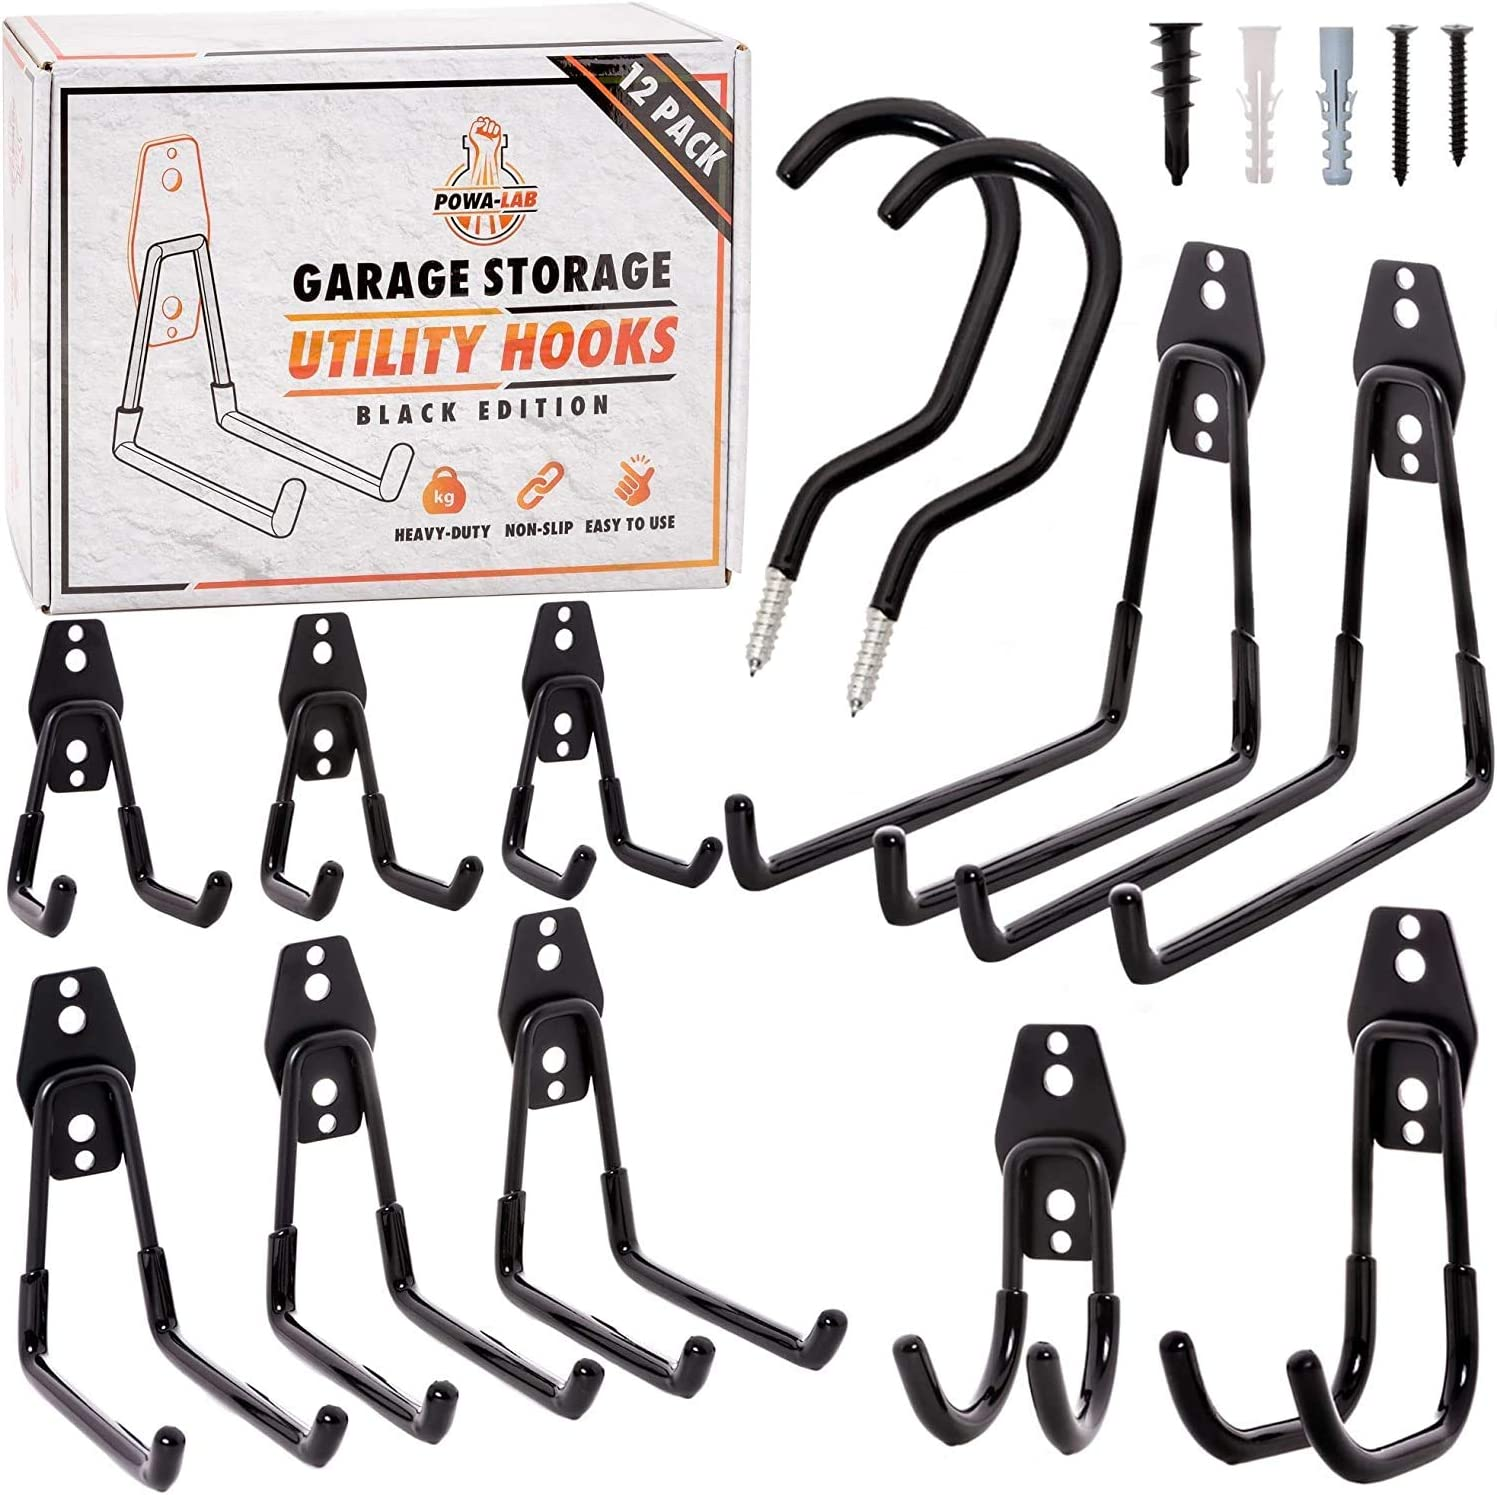 12 Piece Set Steel Garage Storage Hooks with Bike Hooks for Garage Organization - Utility Heavy Duty Hooks for Organizing Power Tools, Ladders, Bikes, Bulk Items - Tool Hangers for Wall - Powa-Lab